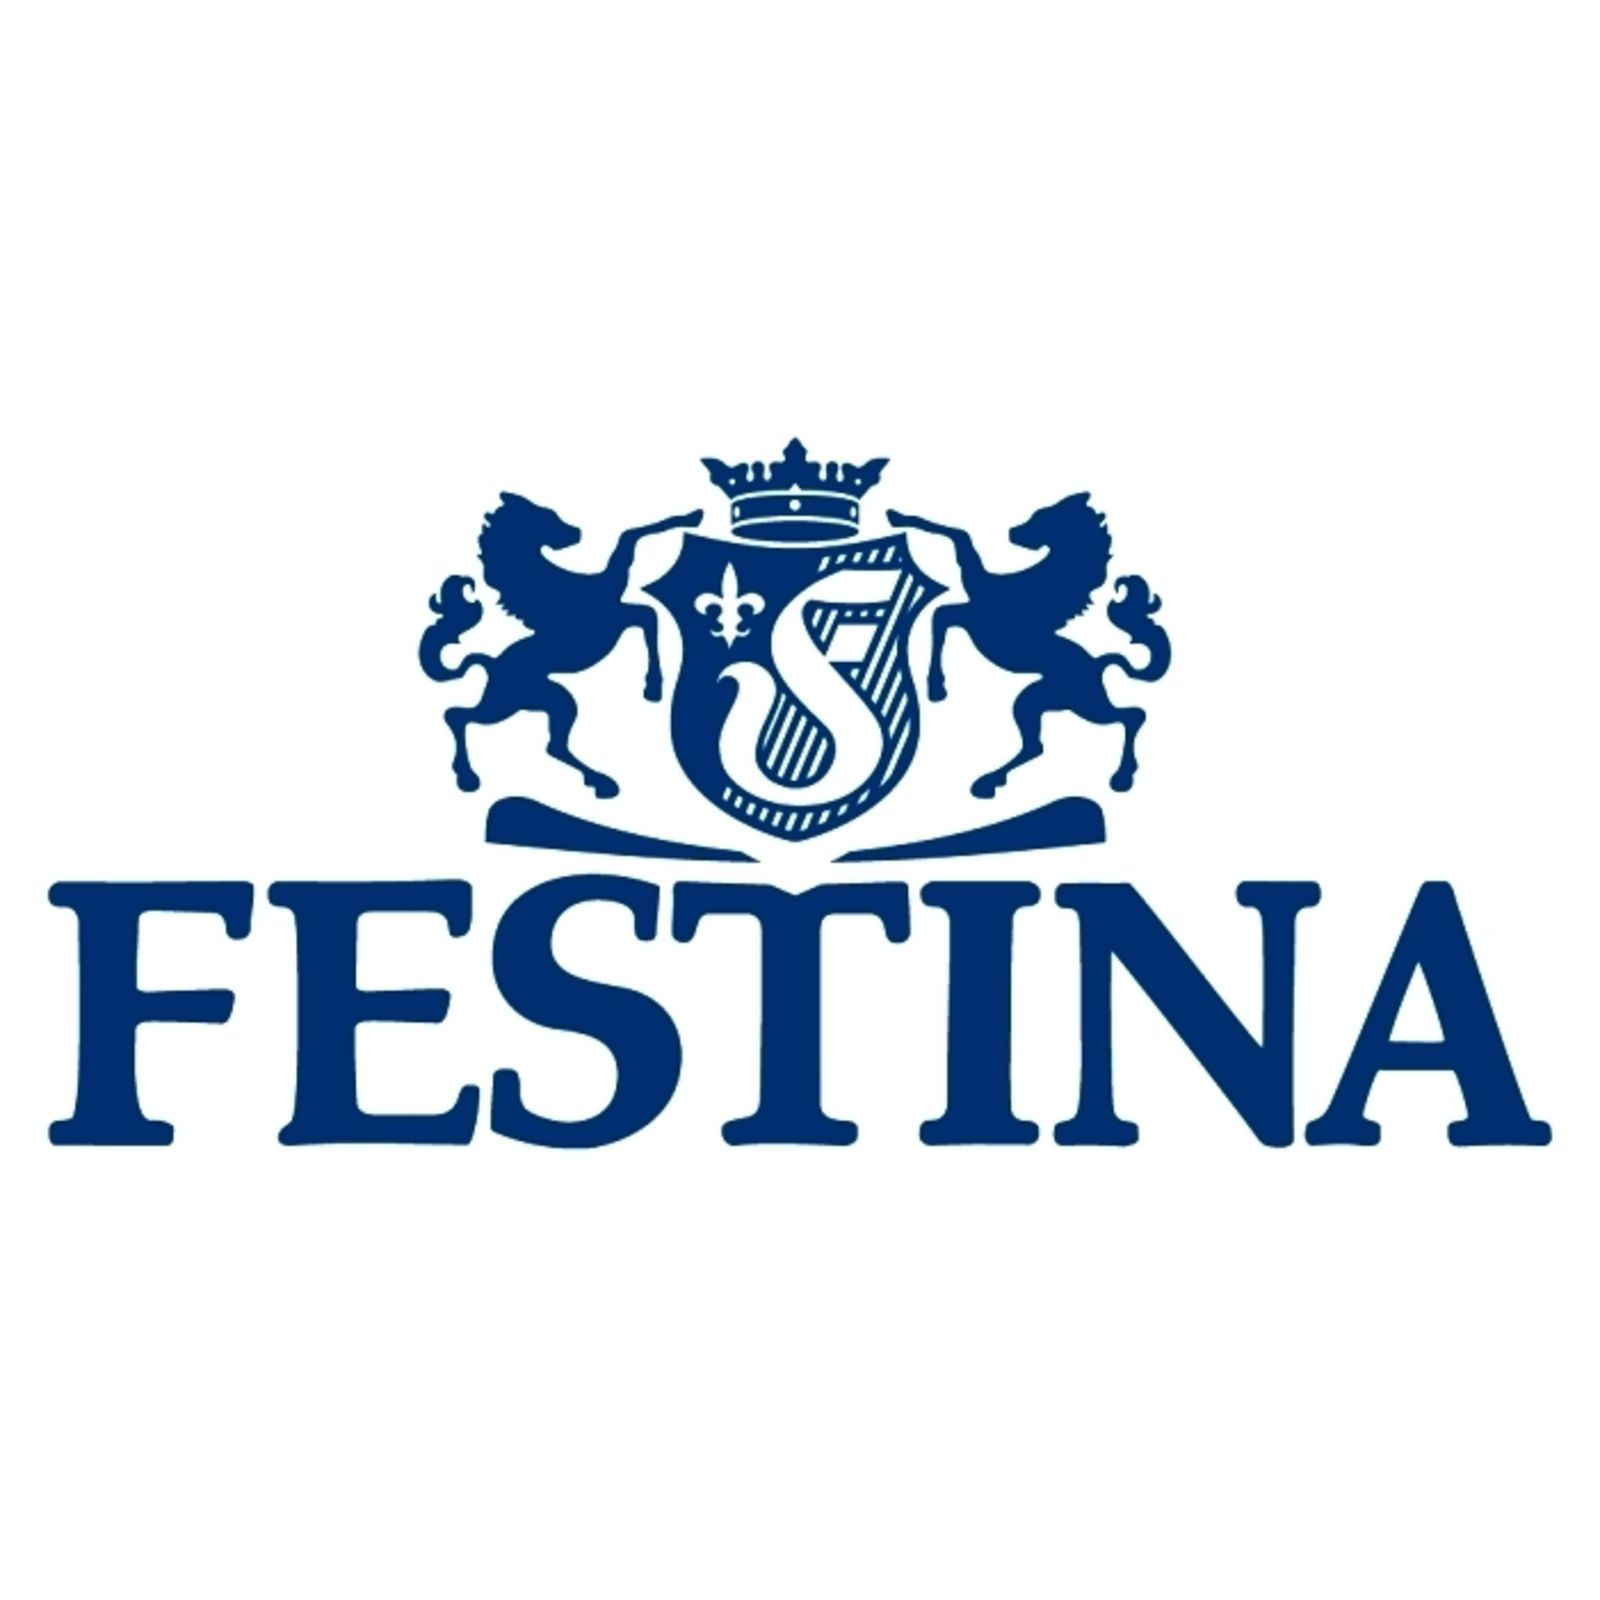 FESTINA